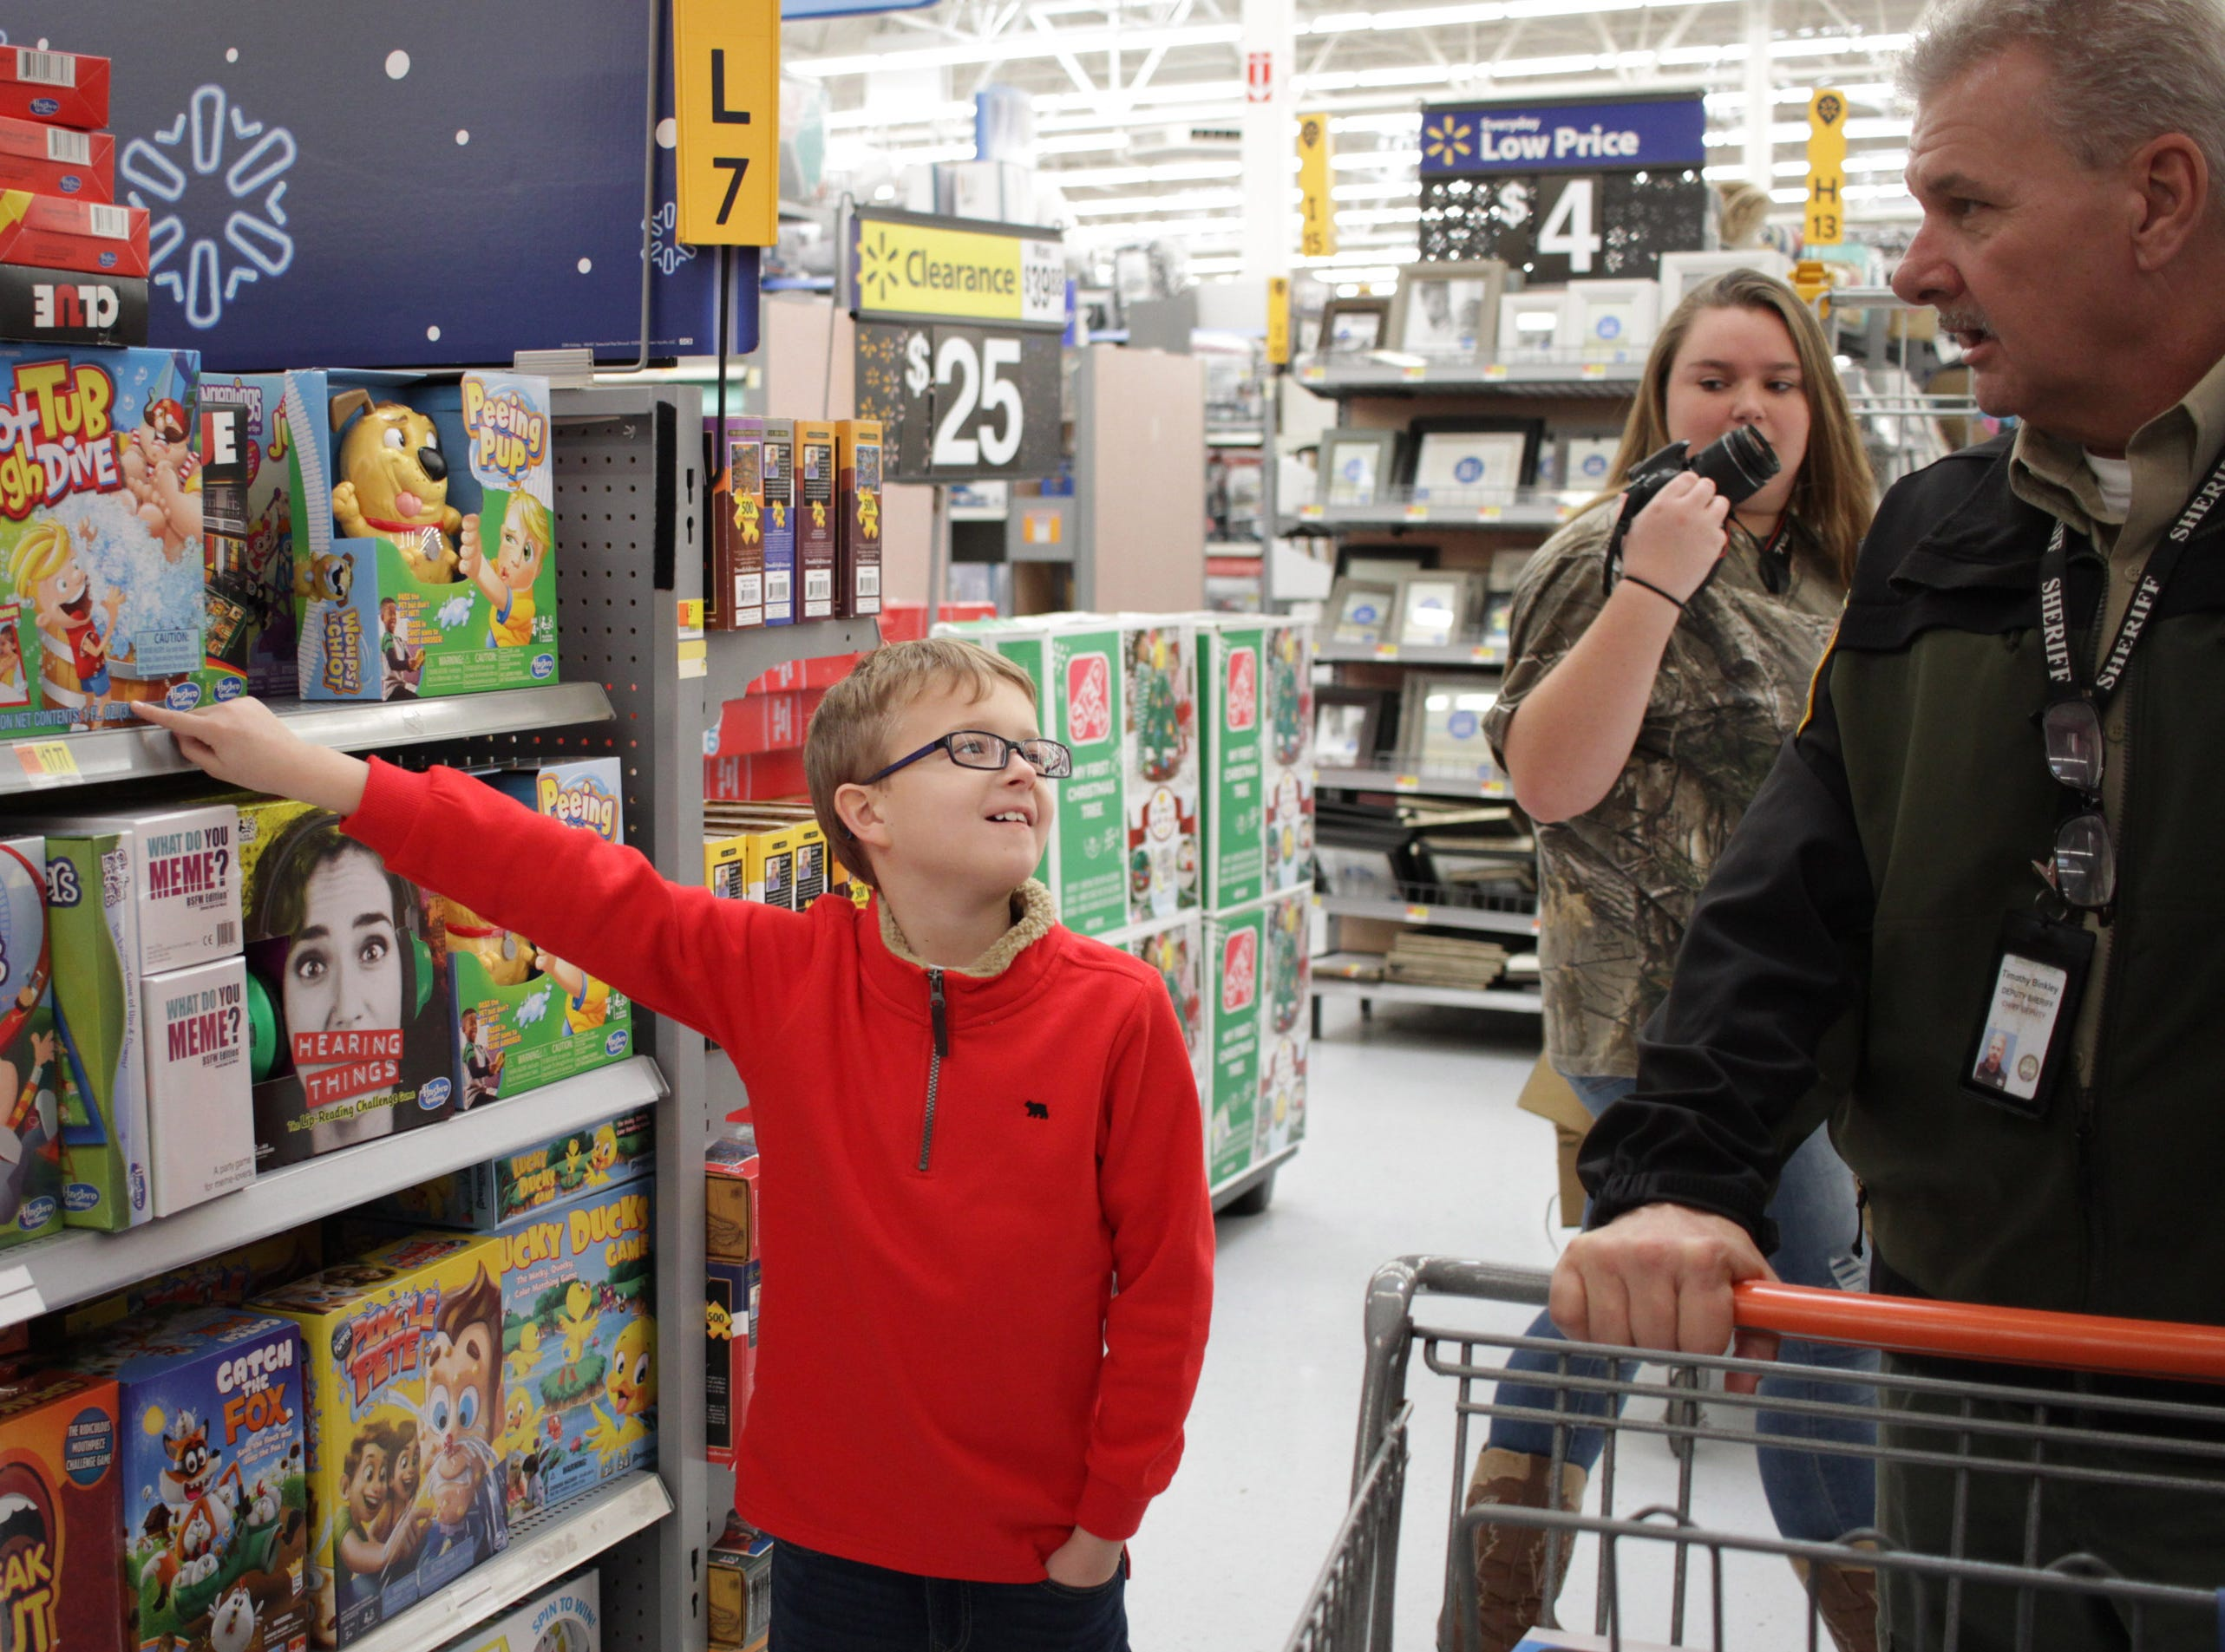 Peyton Whitt (9) points the the Hot Tib High Dive game as he shop with Officer Tim Binkley in Ashland City on Saturday, December 15, 2018.